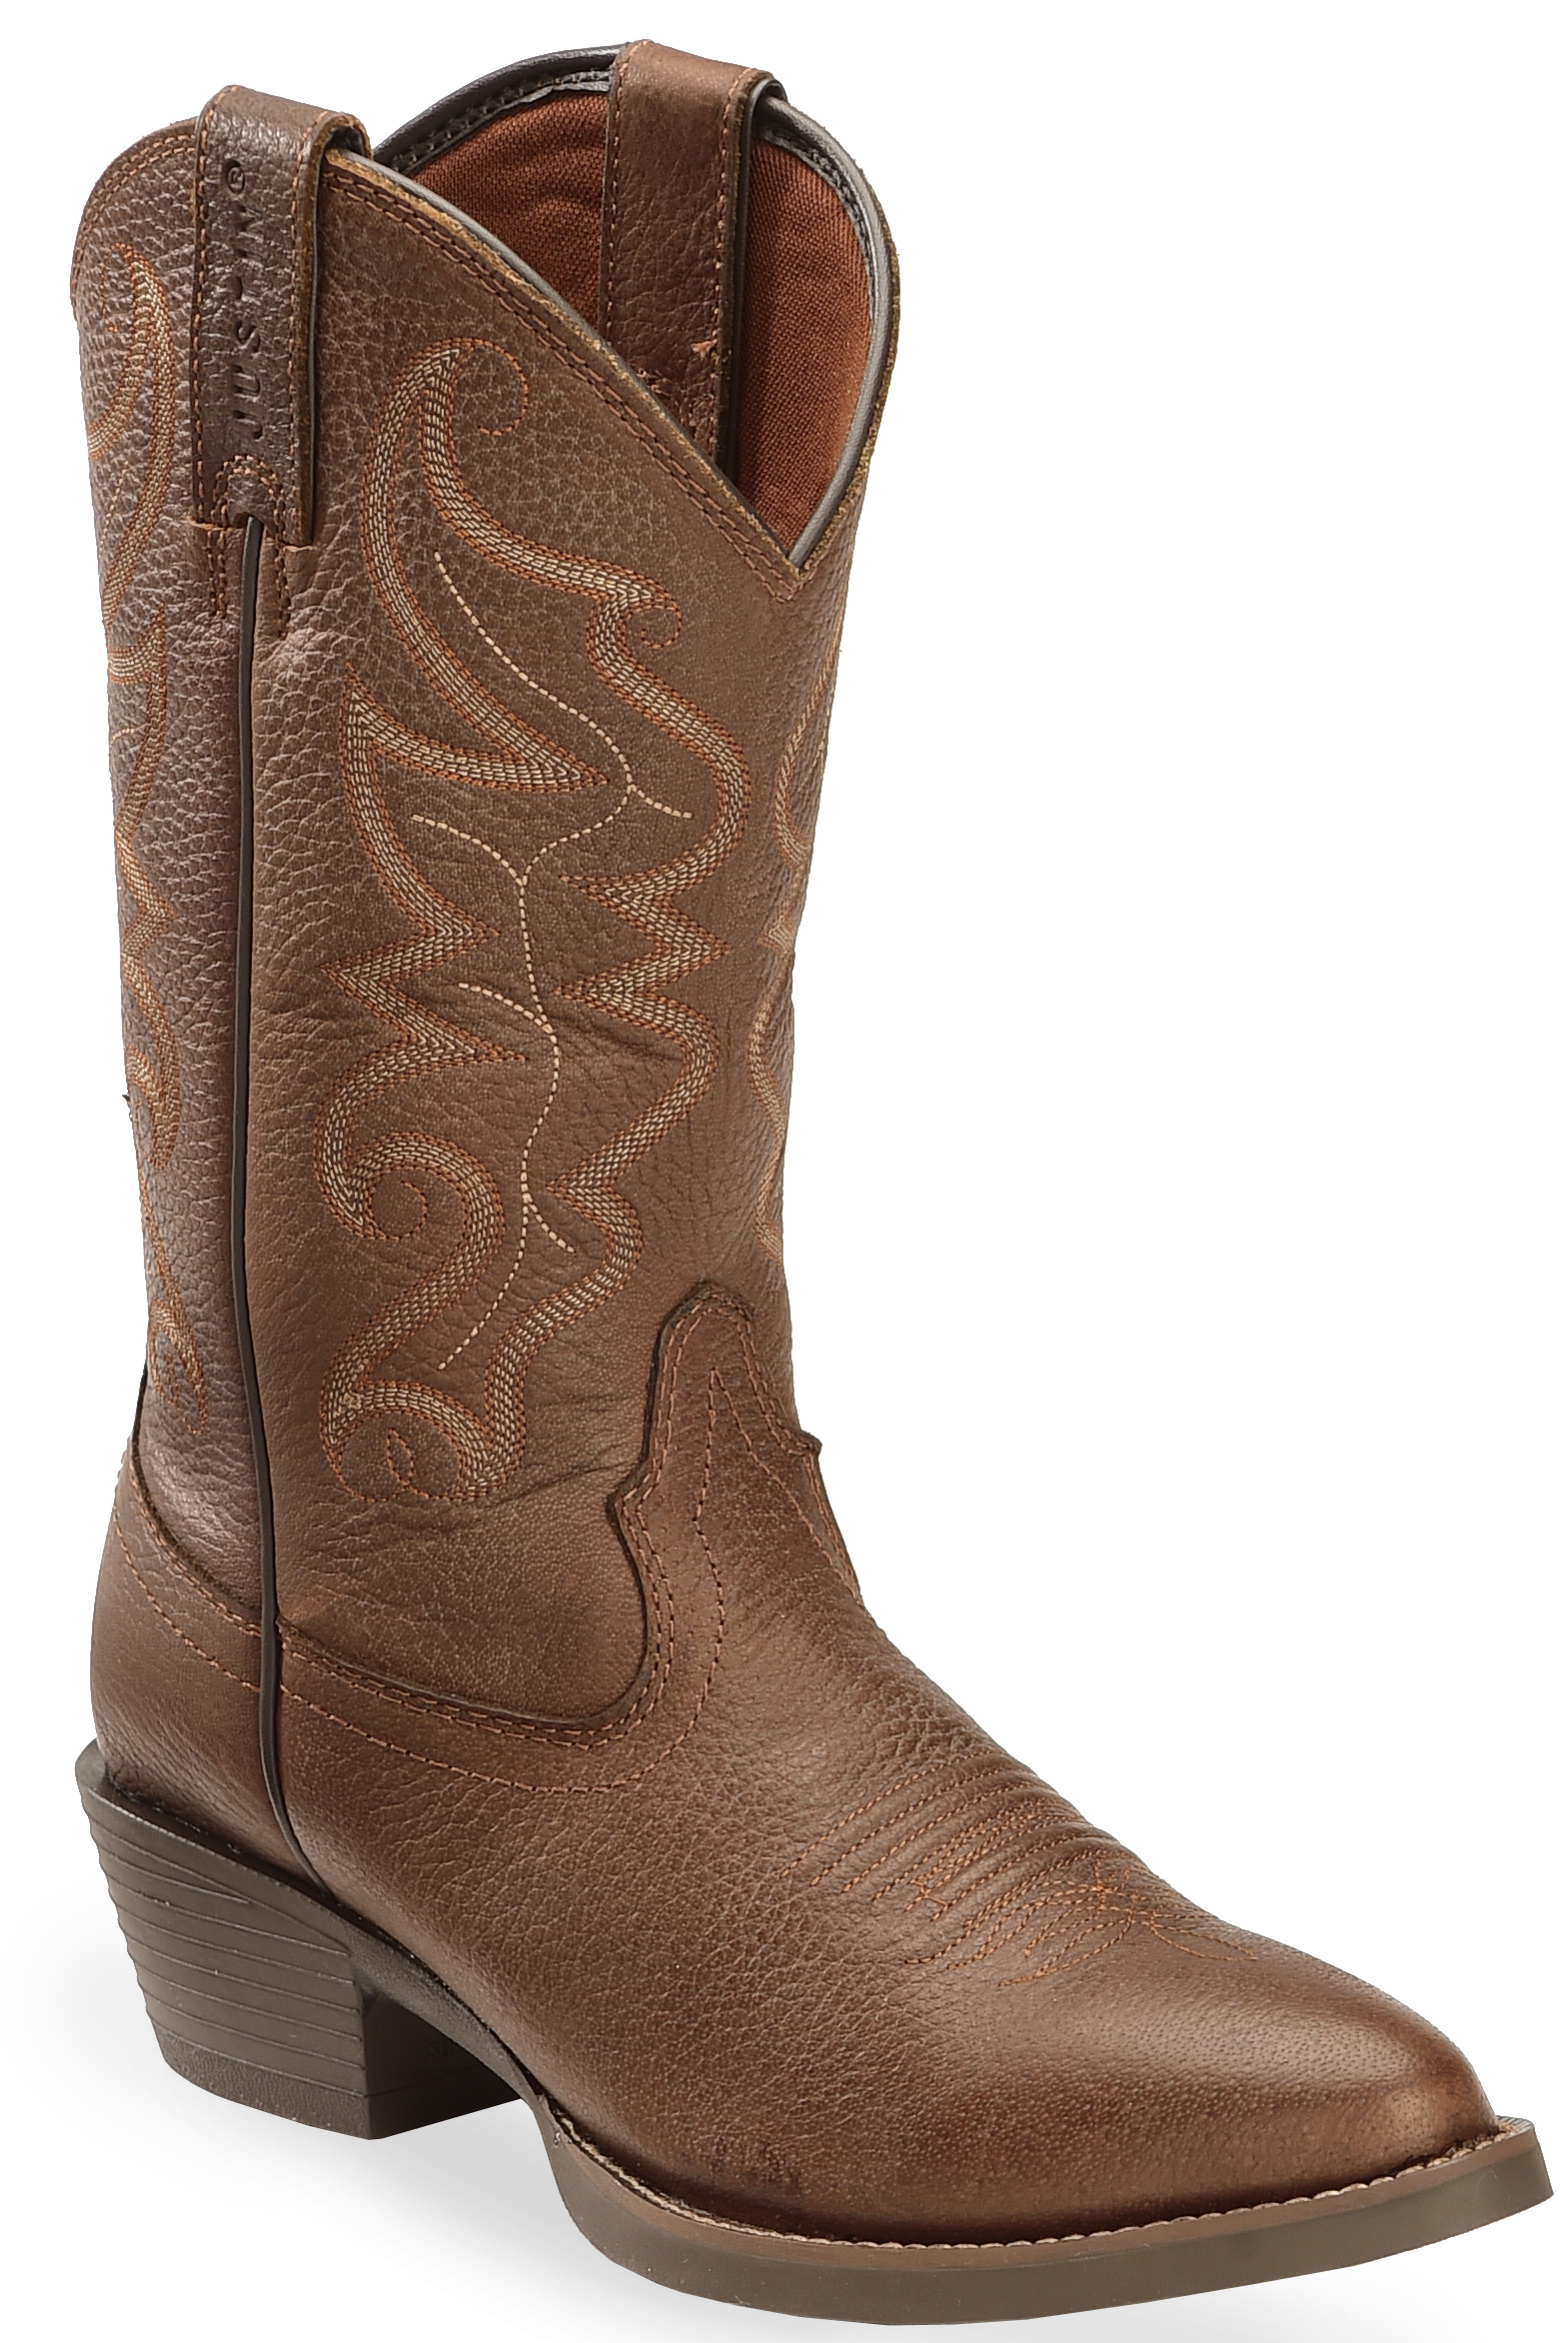 Justin Men S All Star Chocolate Western Boots Round Toe